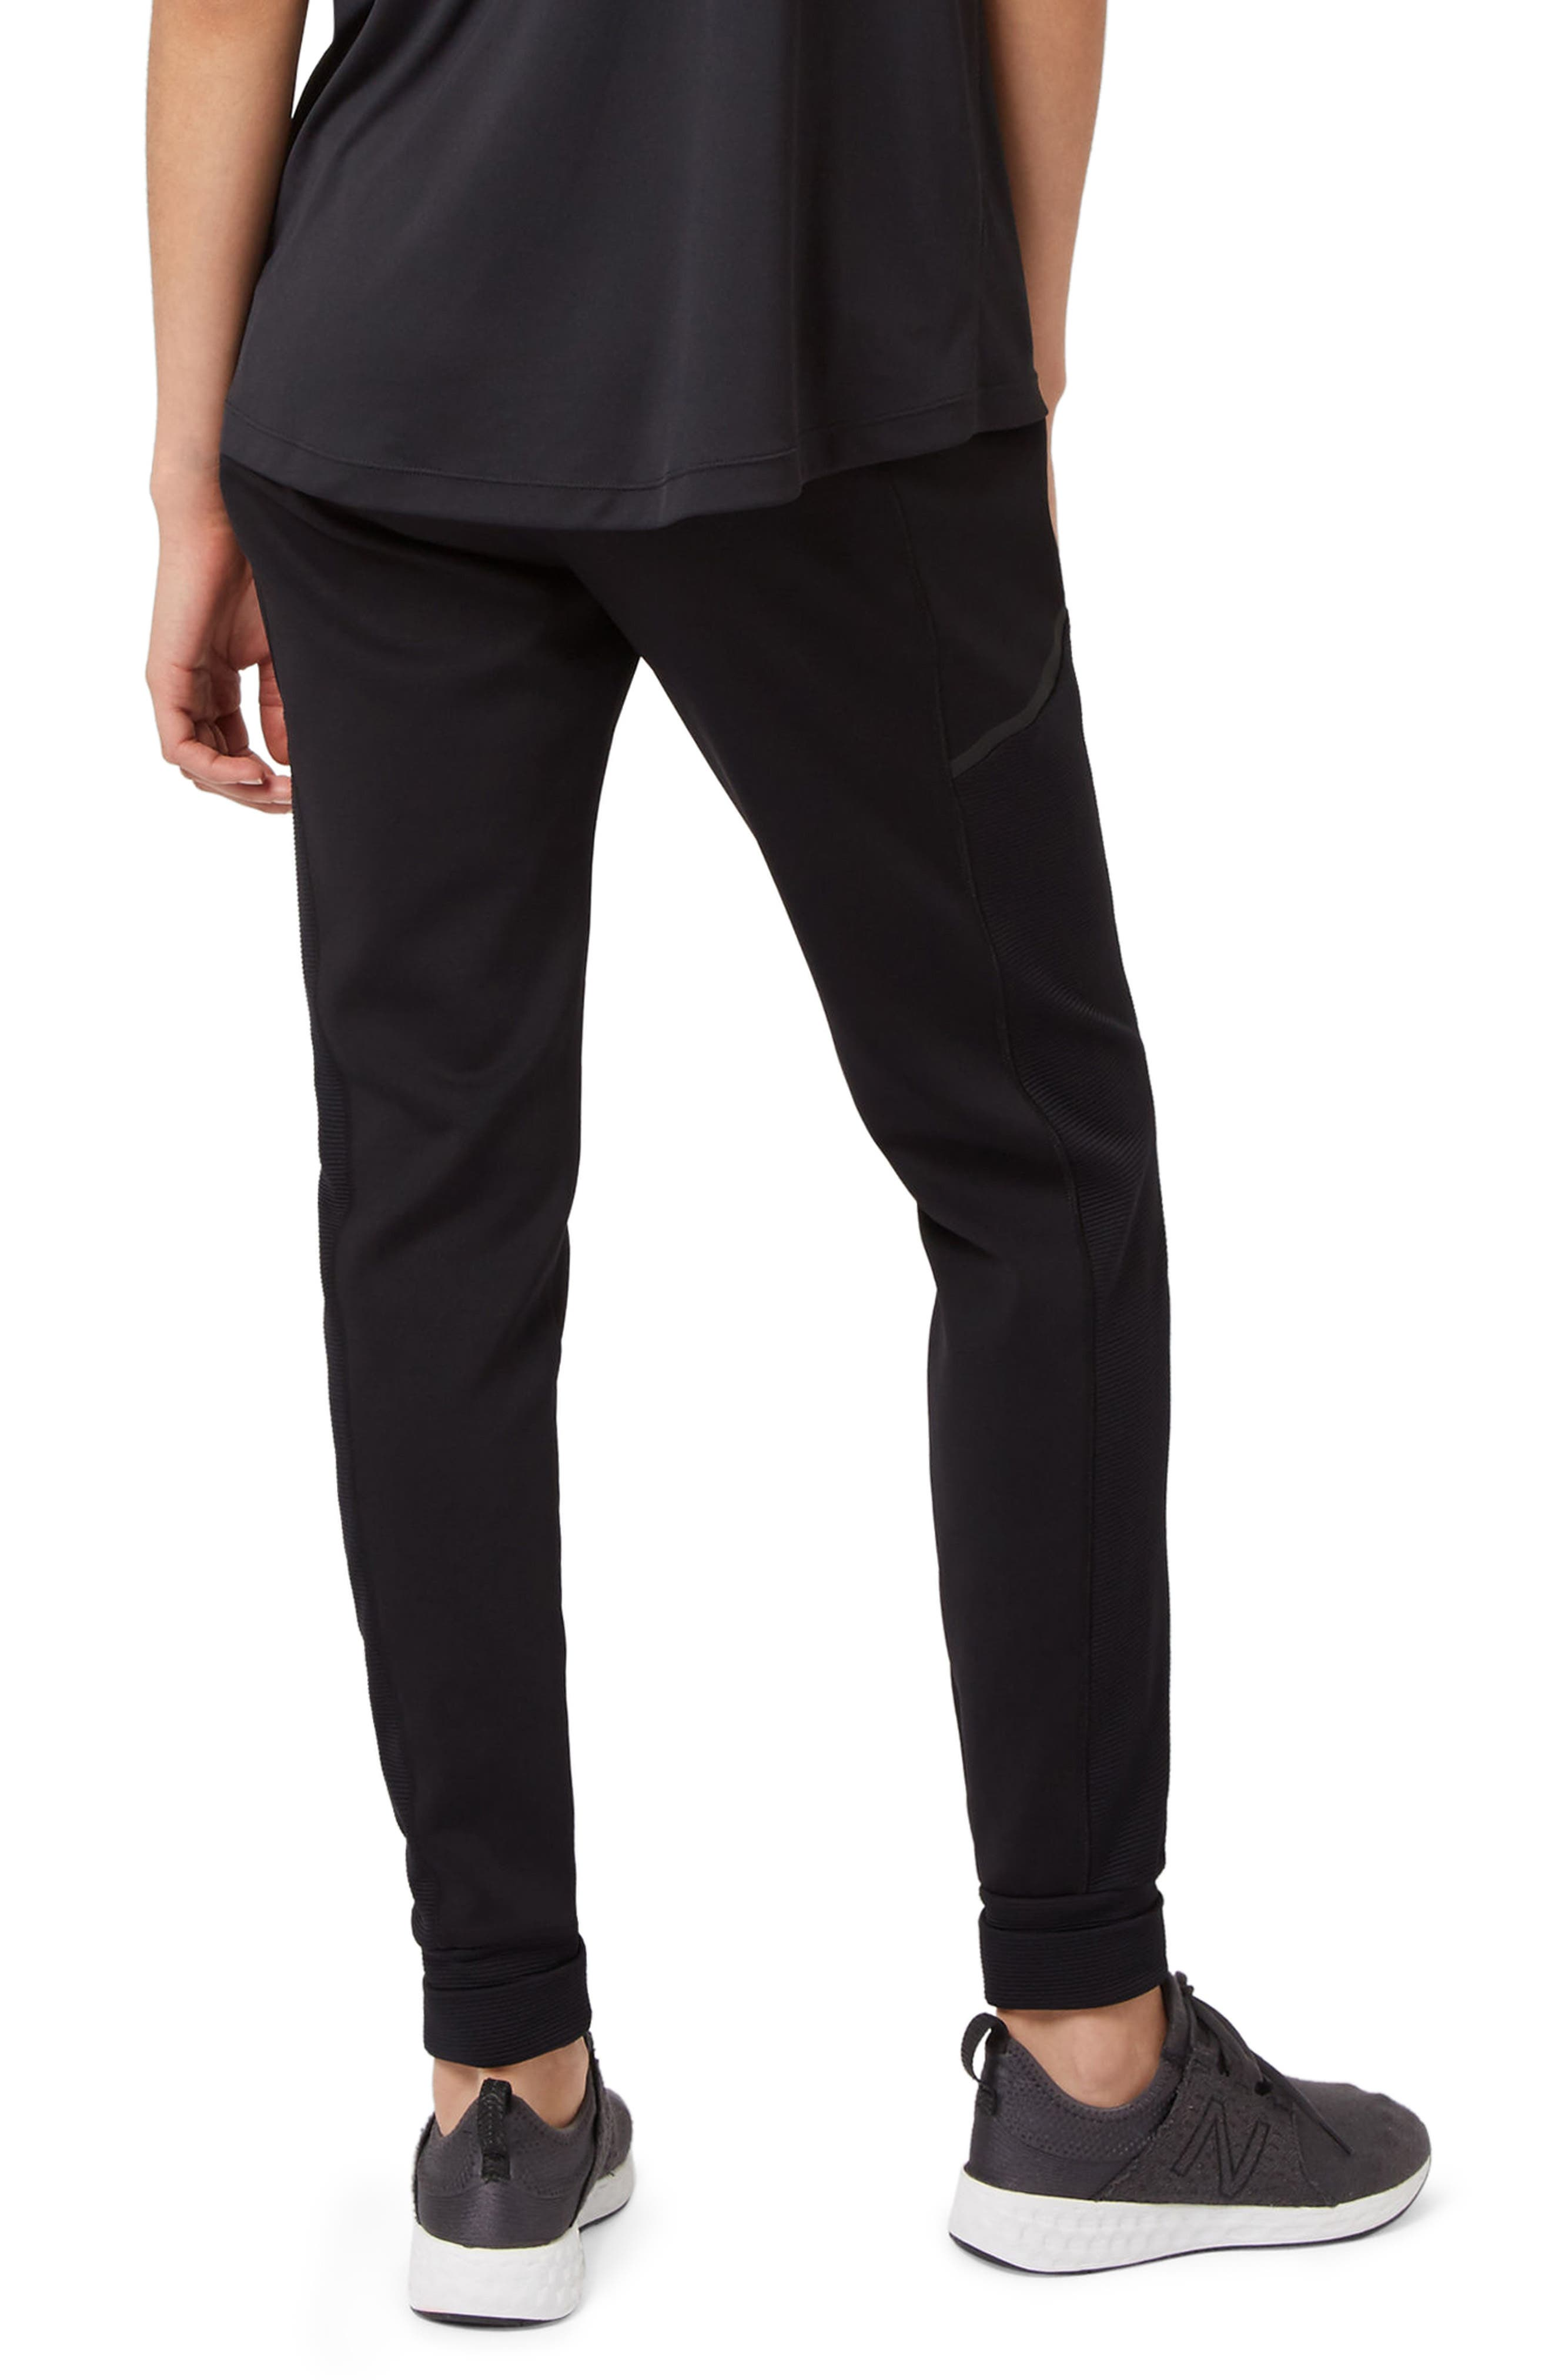 Flex Sweatpants,                             Alternate thumbnail 2, color,                             Black